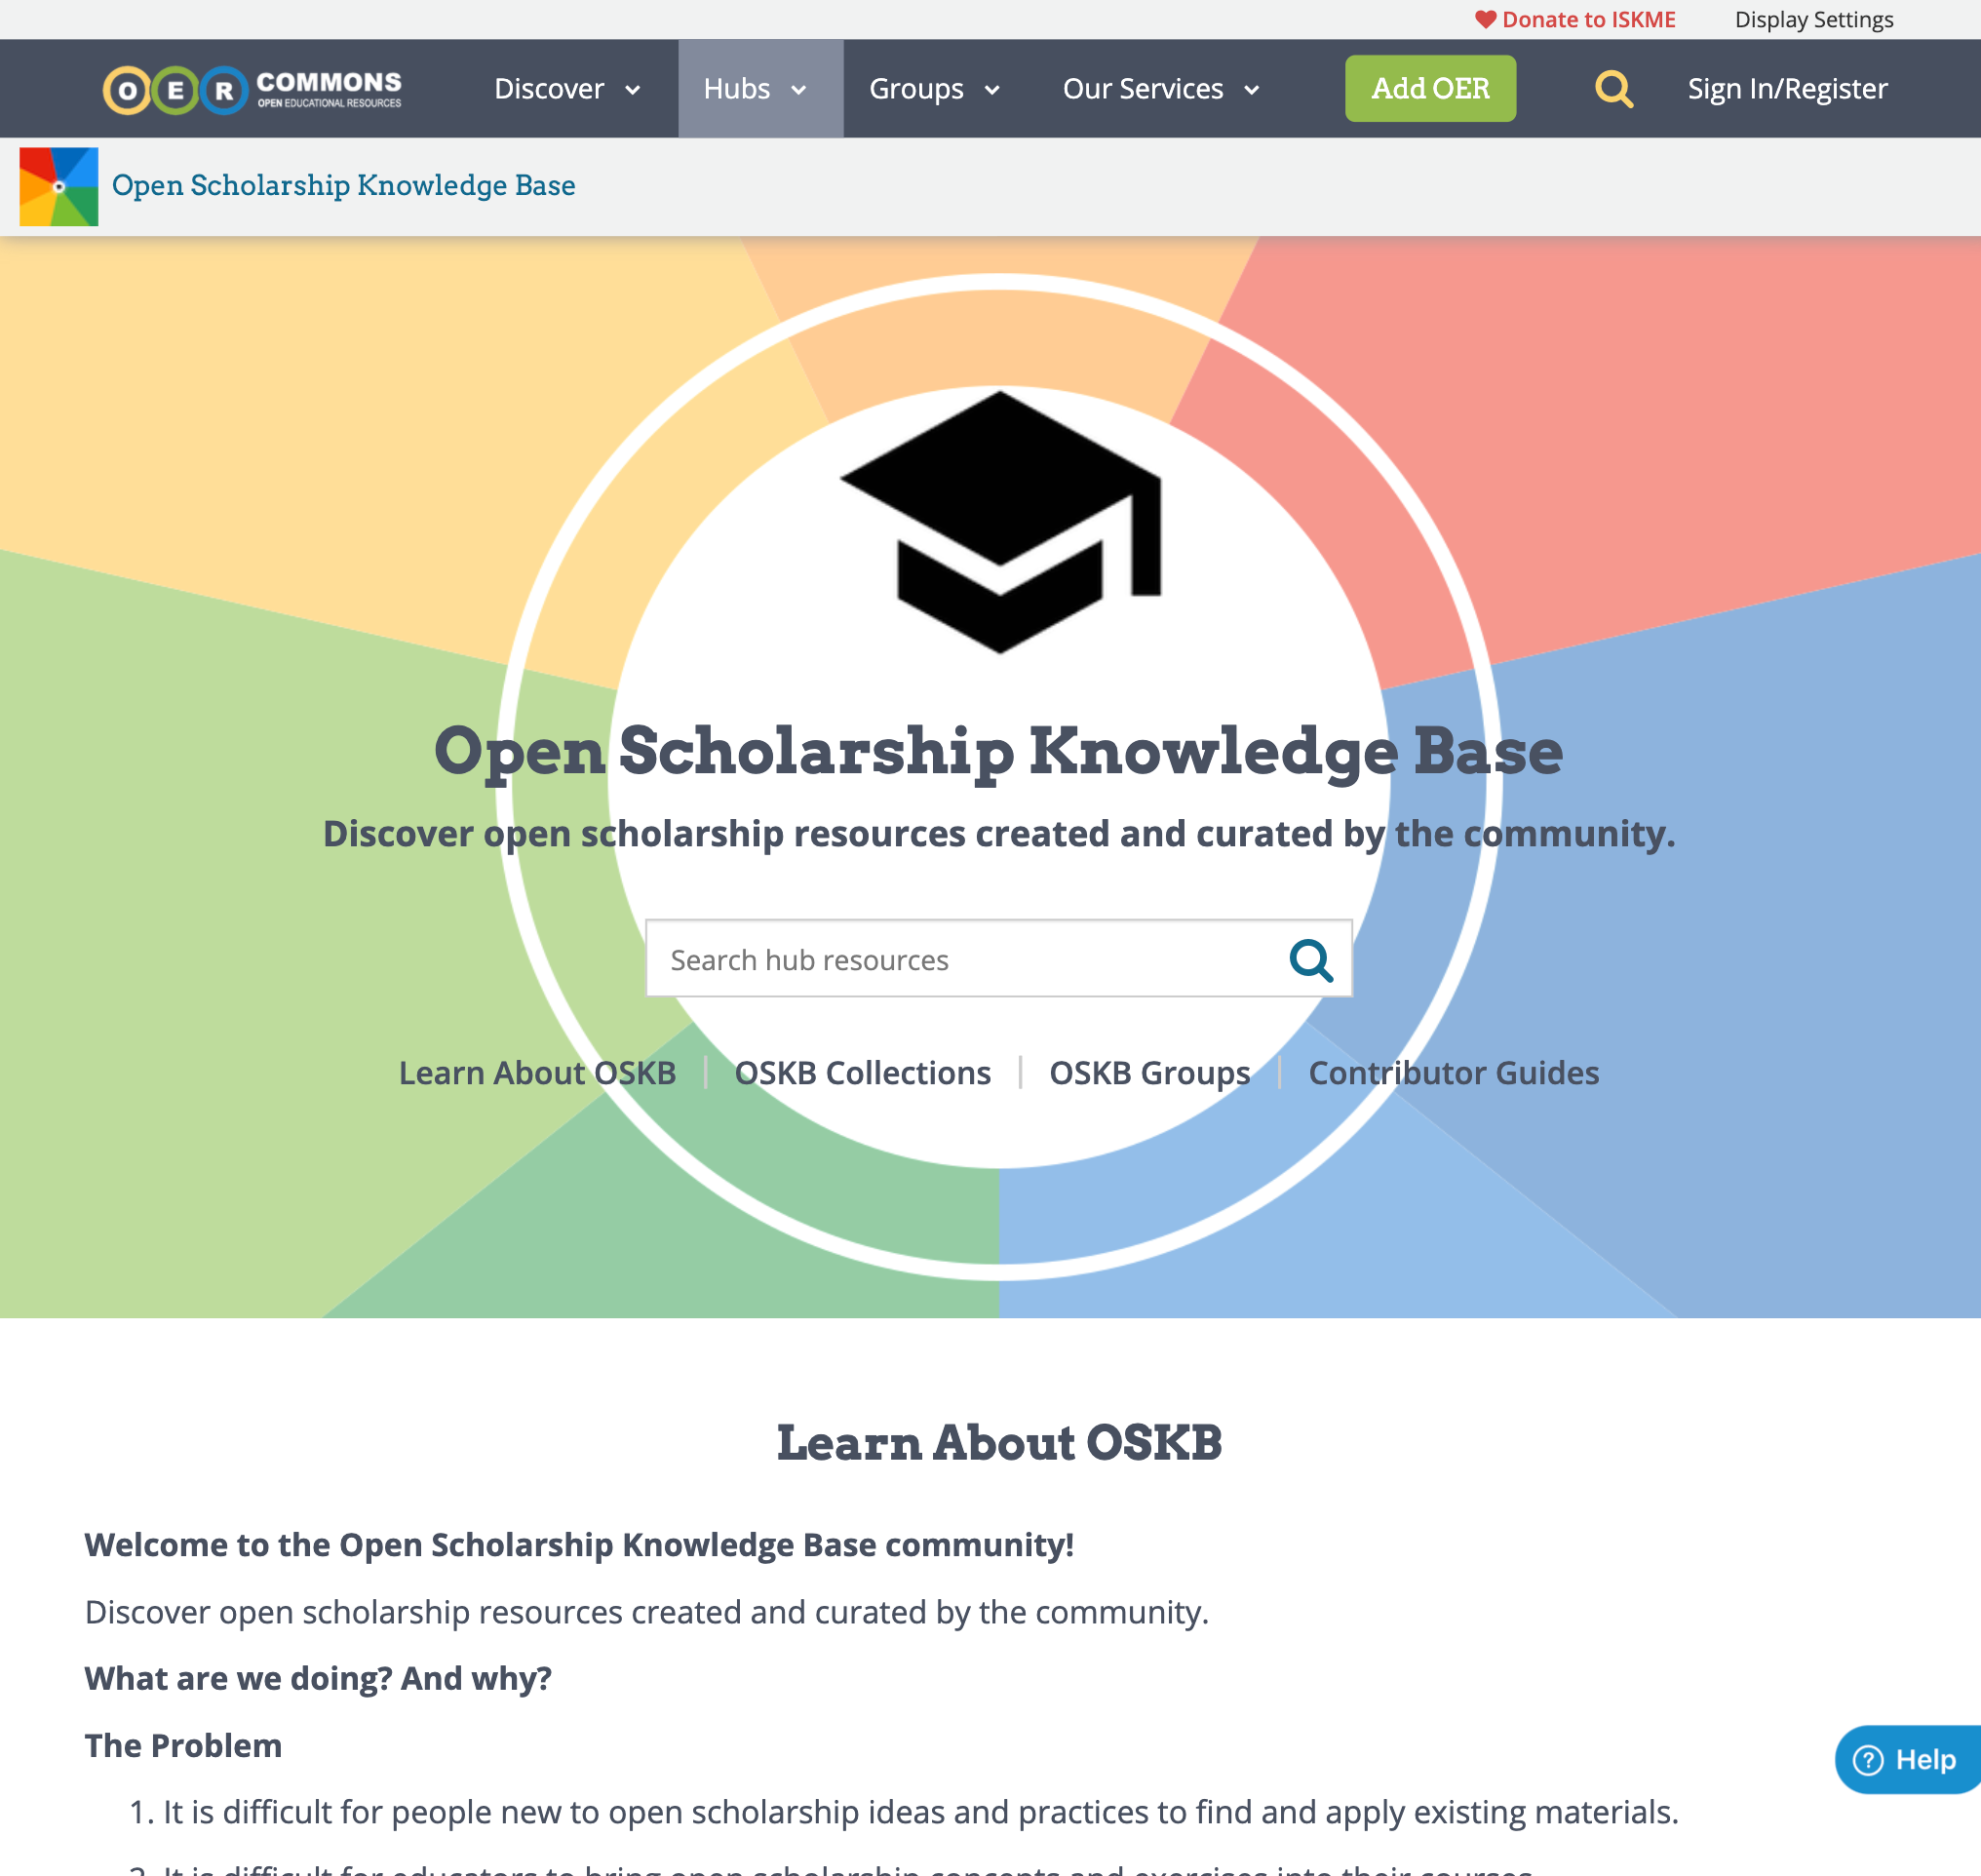 Open Scholarship Knowledge Base